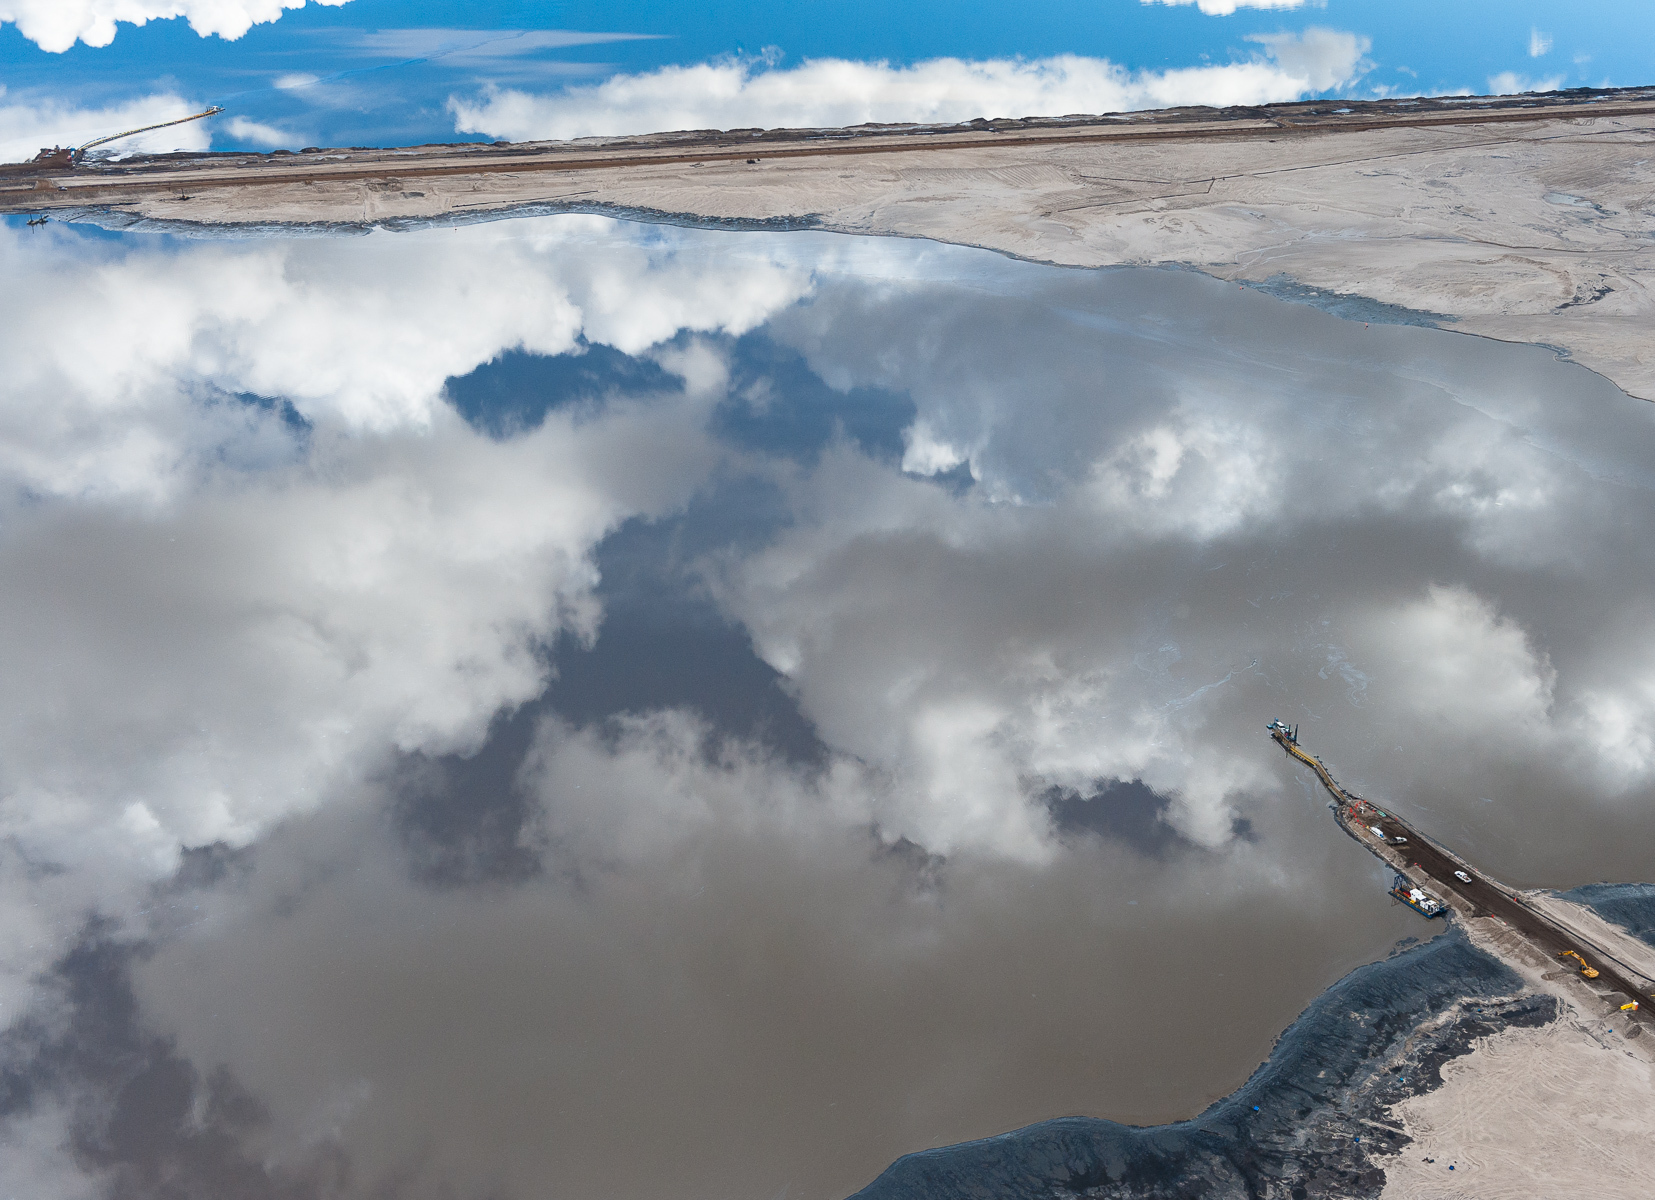 Disguised by the beauty of a reflection, these toxic tailings ponds are a considerable health risk. These vast toxic lakes are completely unlined and nearly a dozen of them lie on either side of the Athabasca River. Individual ponds can range in size up to 8,850 acres.